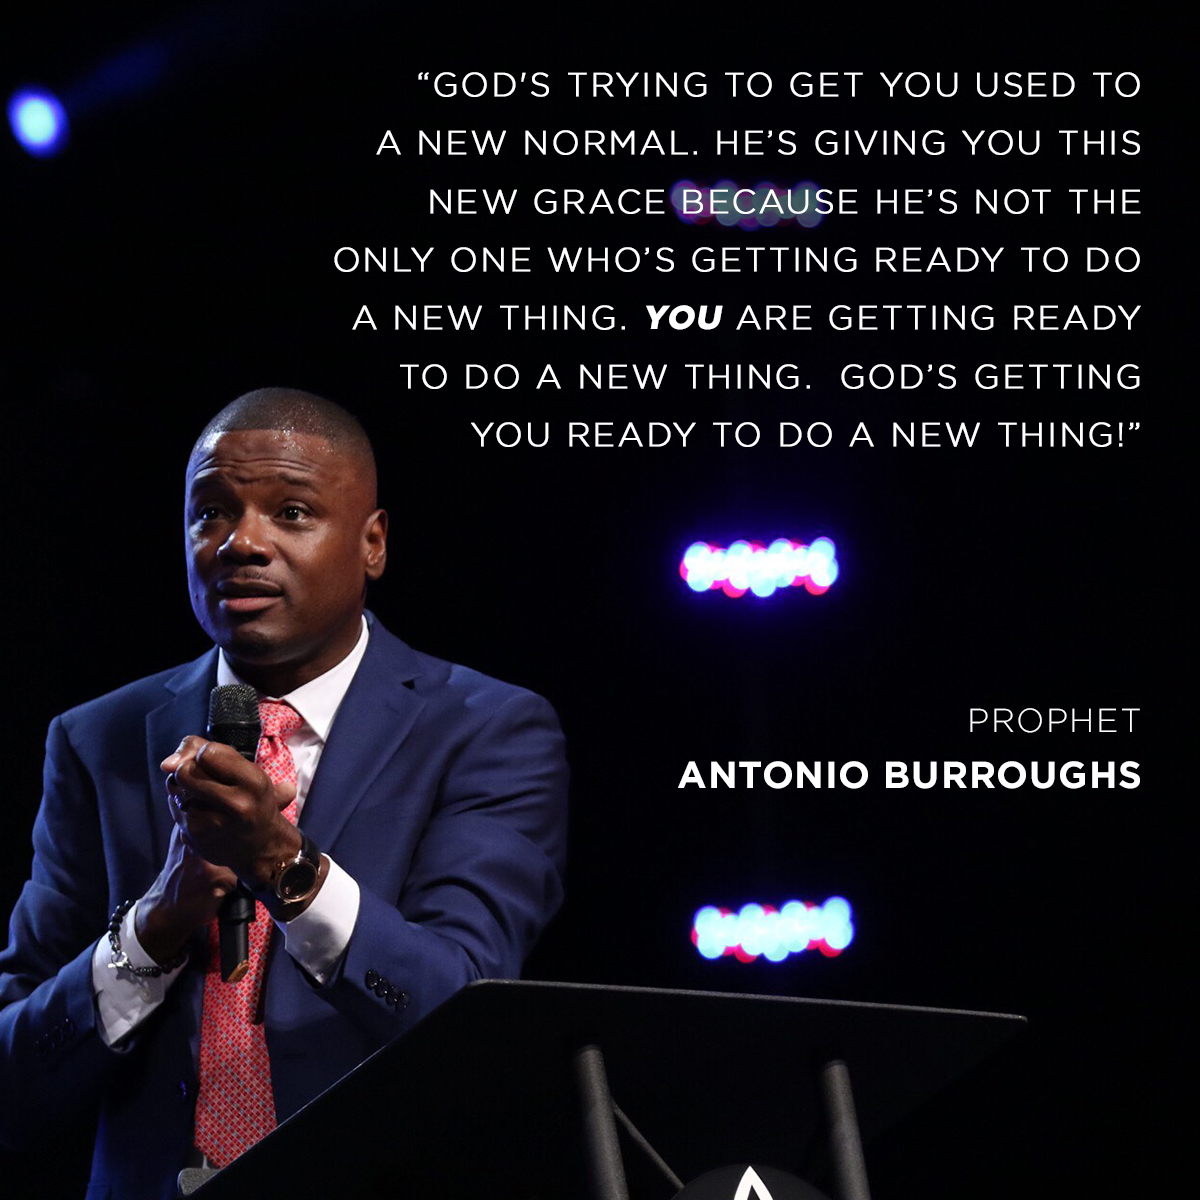 """God's trying to get you used to a new normal. He's giving you this new grace because He's not the only one who's getting ready to do a new thing. You are getting ready to do a new thing.  God's getting you ready to do a new thing!"" – Prophet Antonio Burroughs"